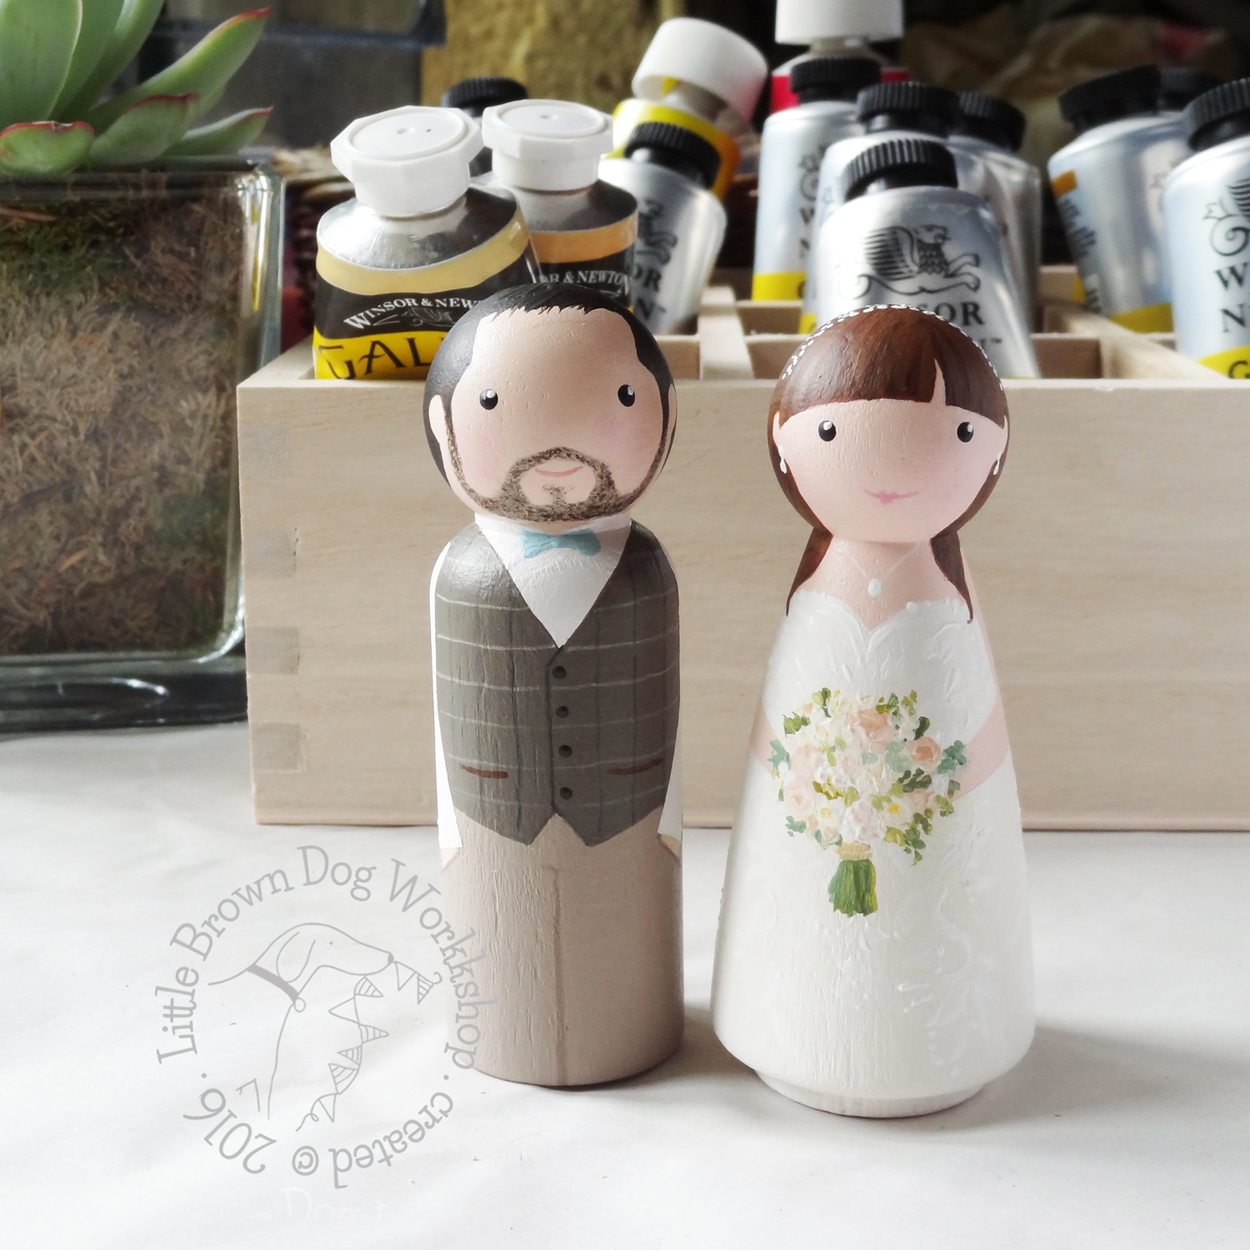 Wooden peg doll wedding cake topper by Little Brown Dog Workshop